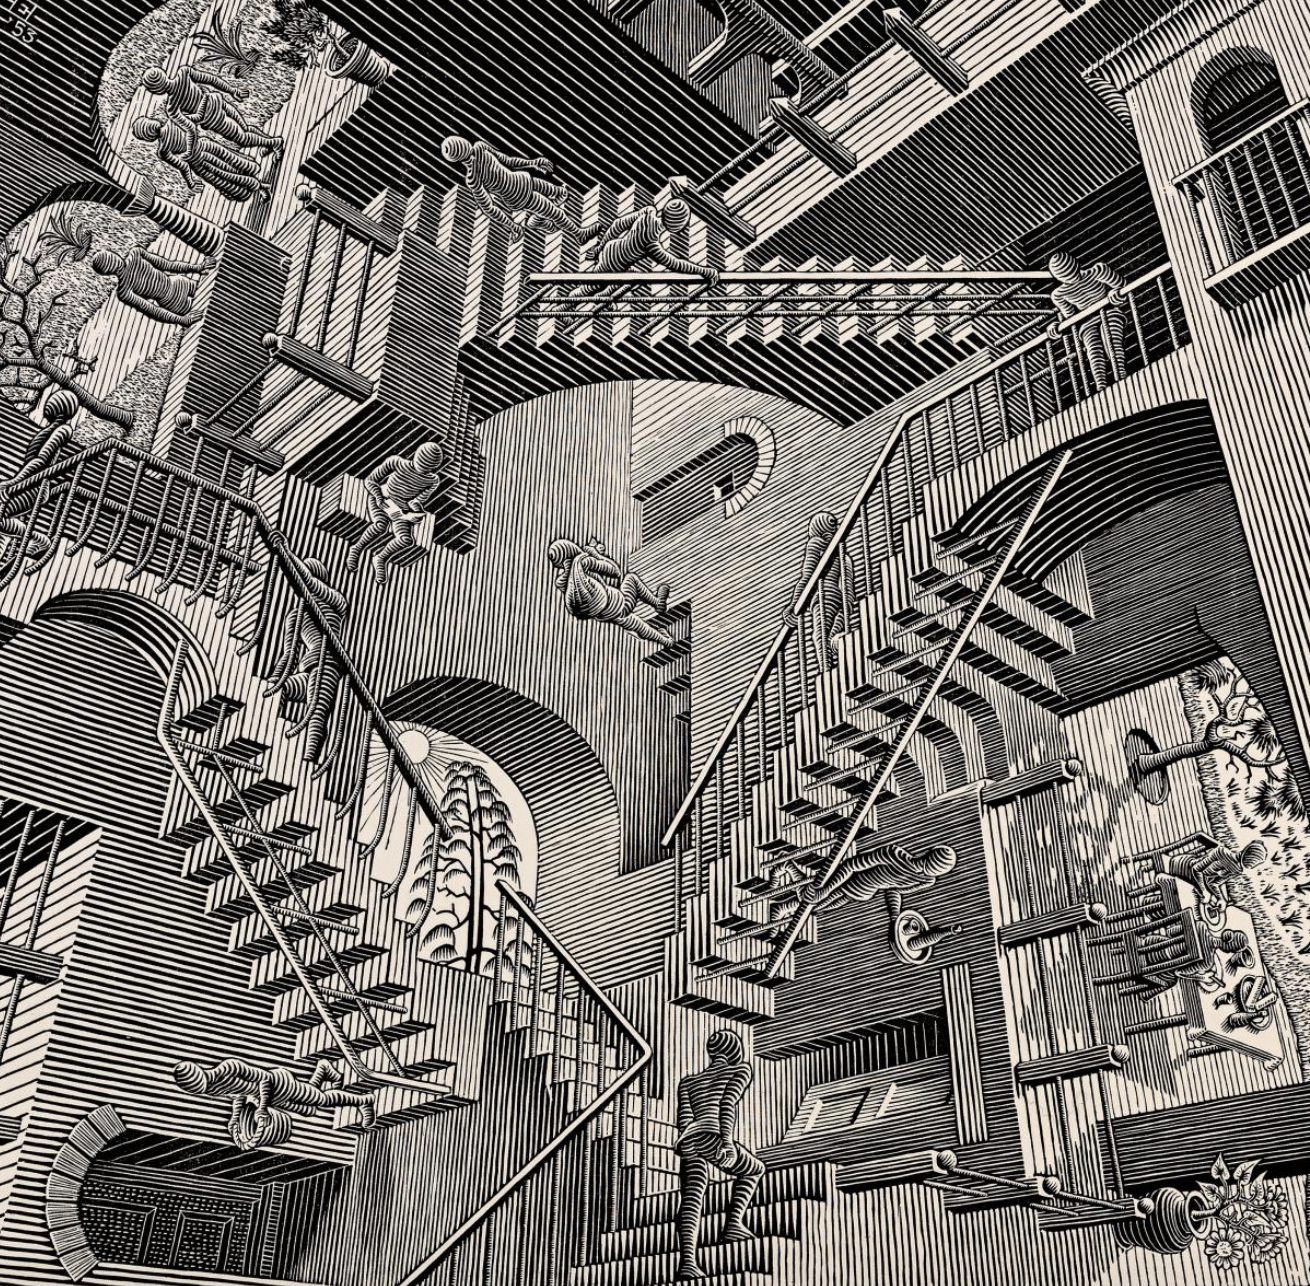 M.C. Escher: Illusions, Inventions and Infinity [Melbourne]